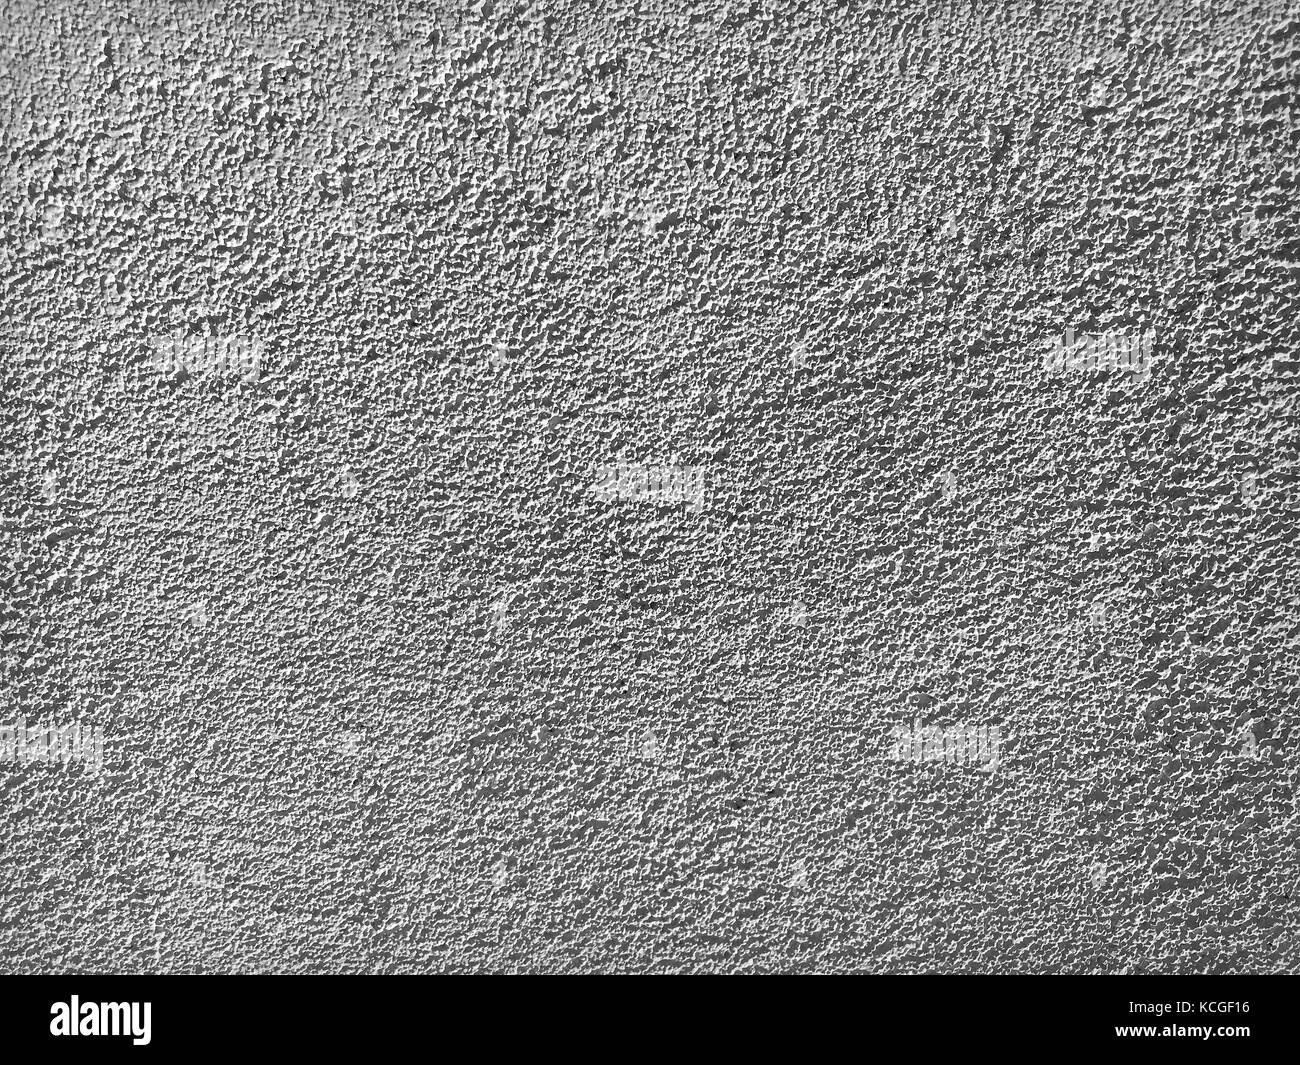 Concrete wall texture - Stock Image